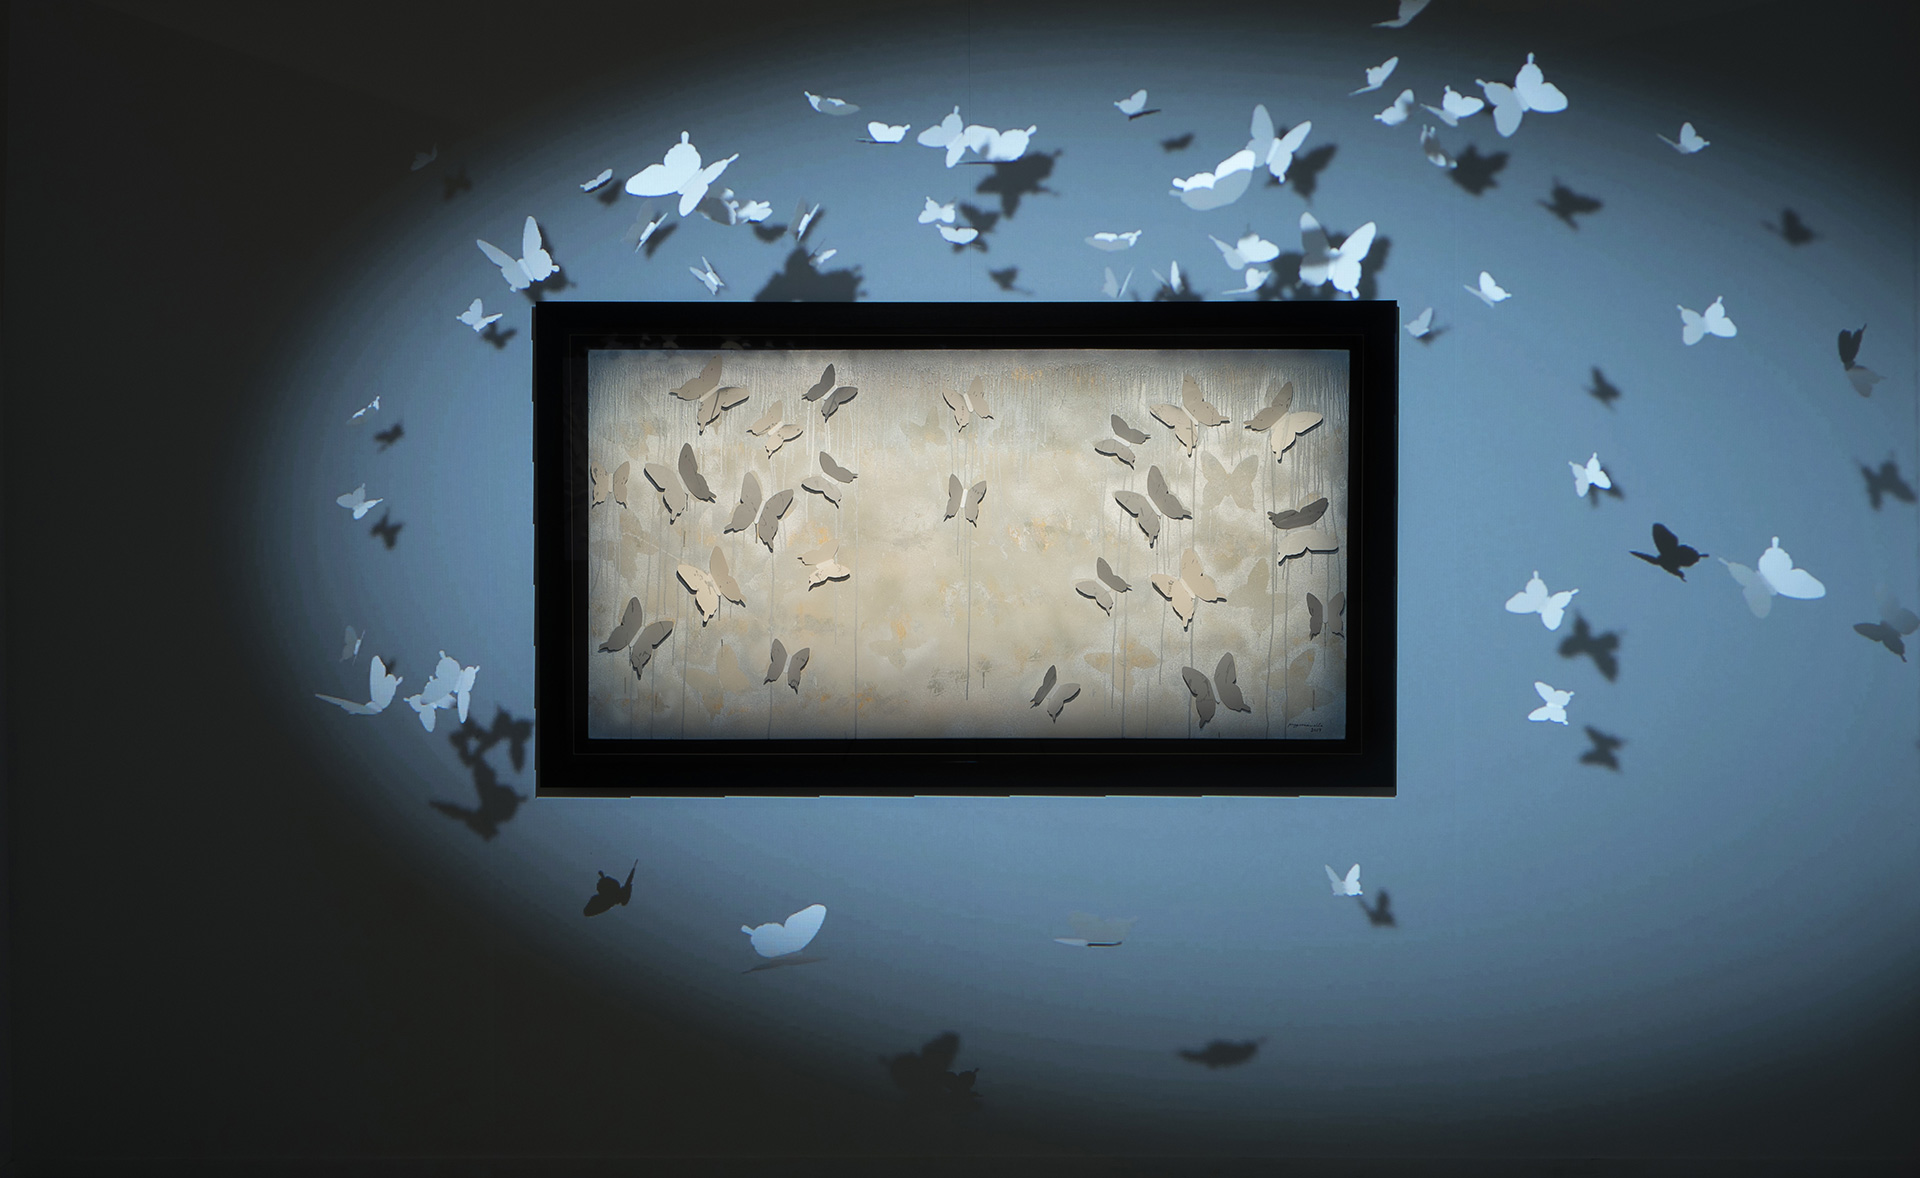 Mapping Frost, a multi-media installation | Introspection | Michelle Poonawalla | STIR